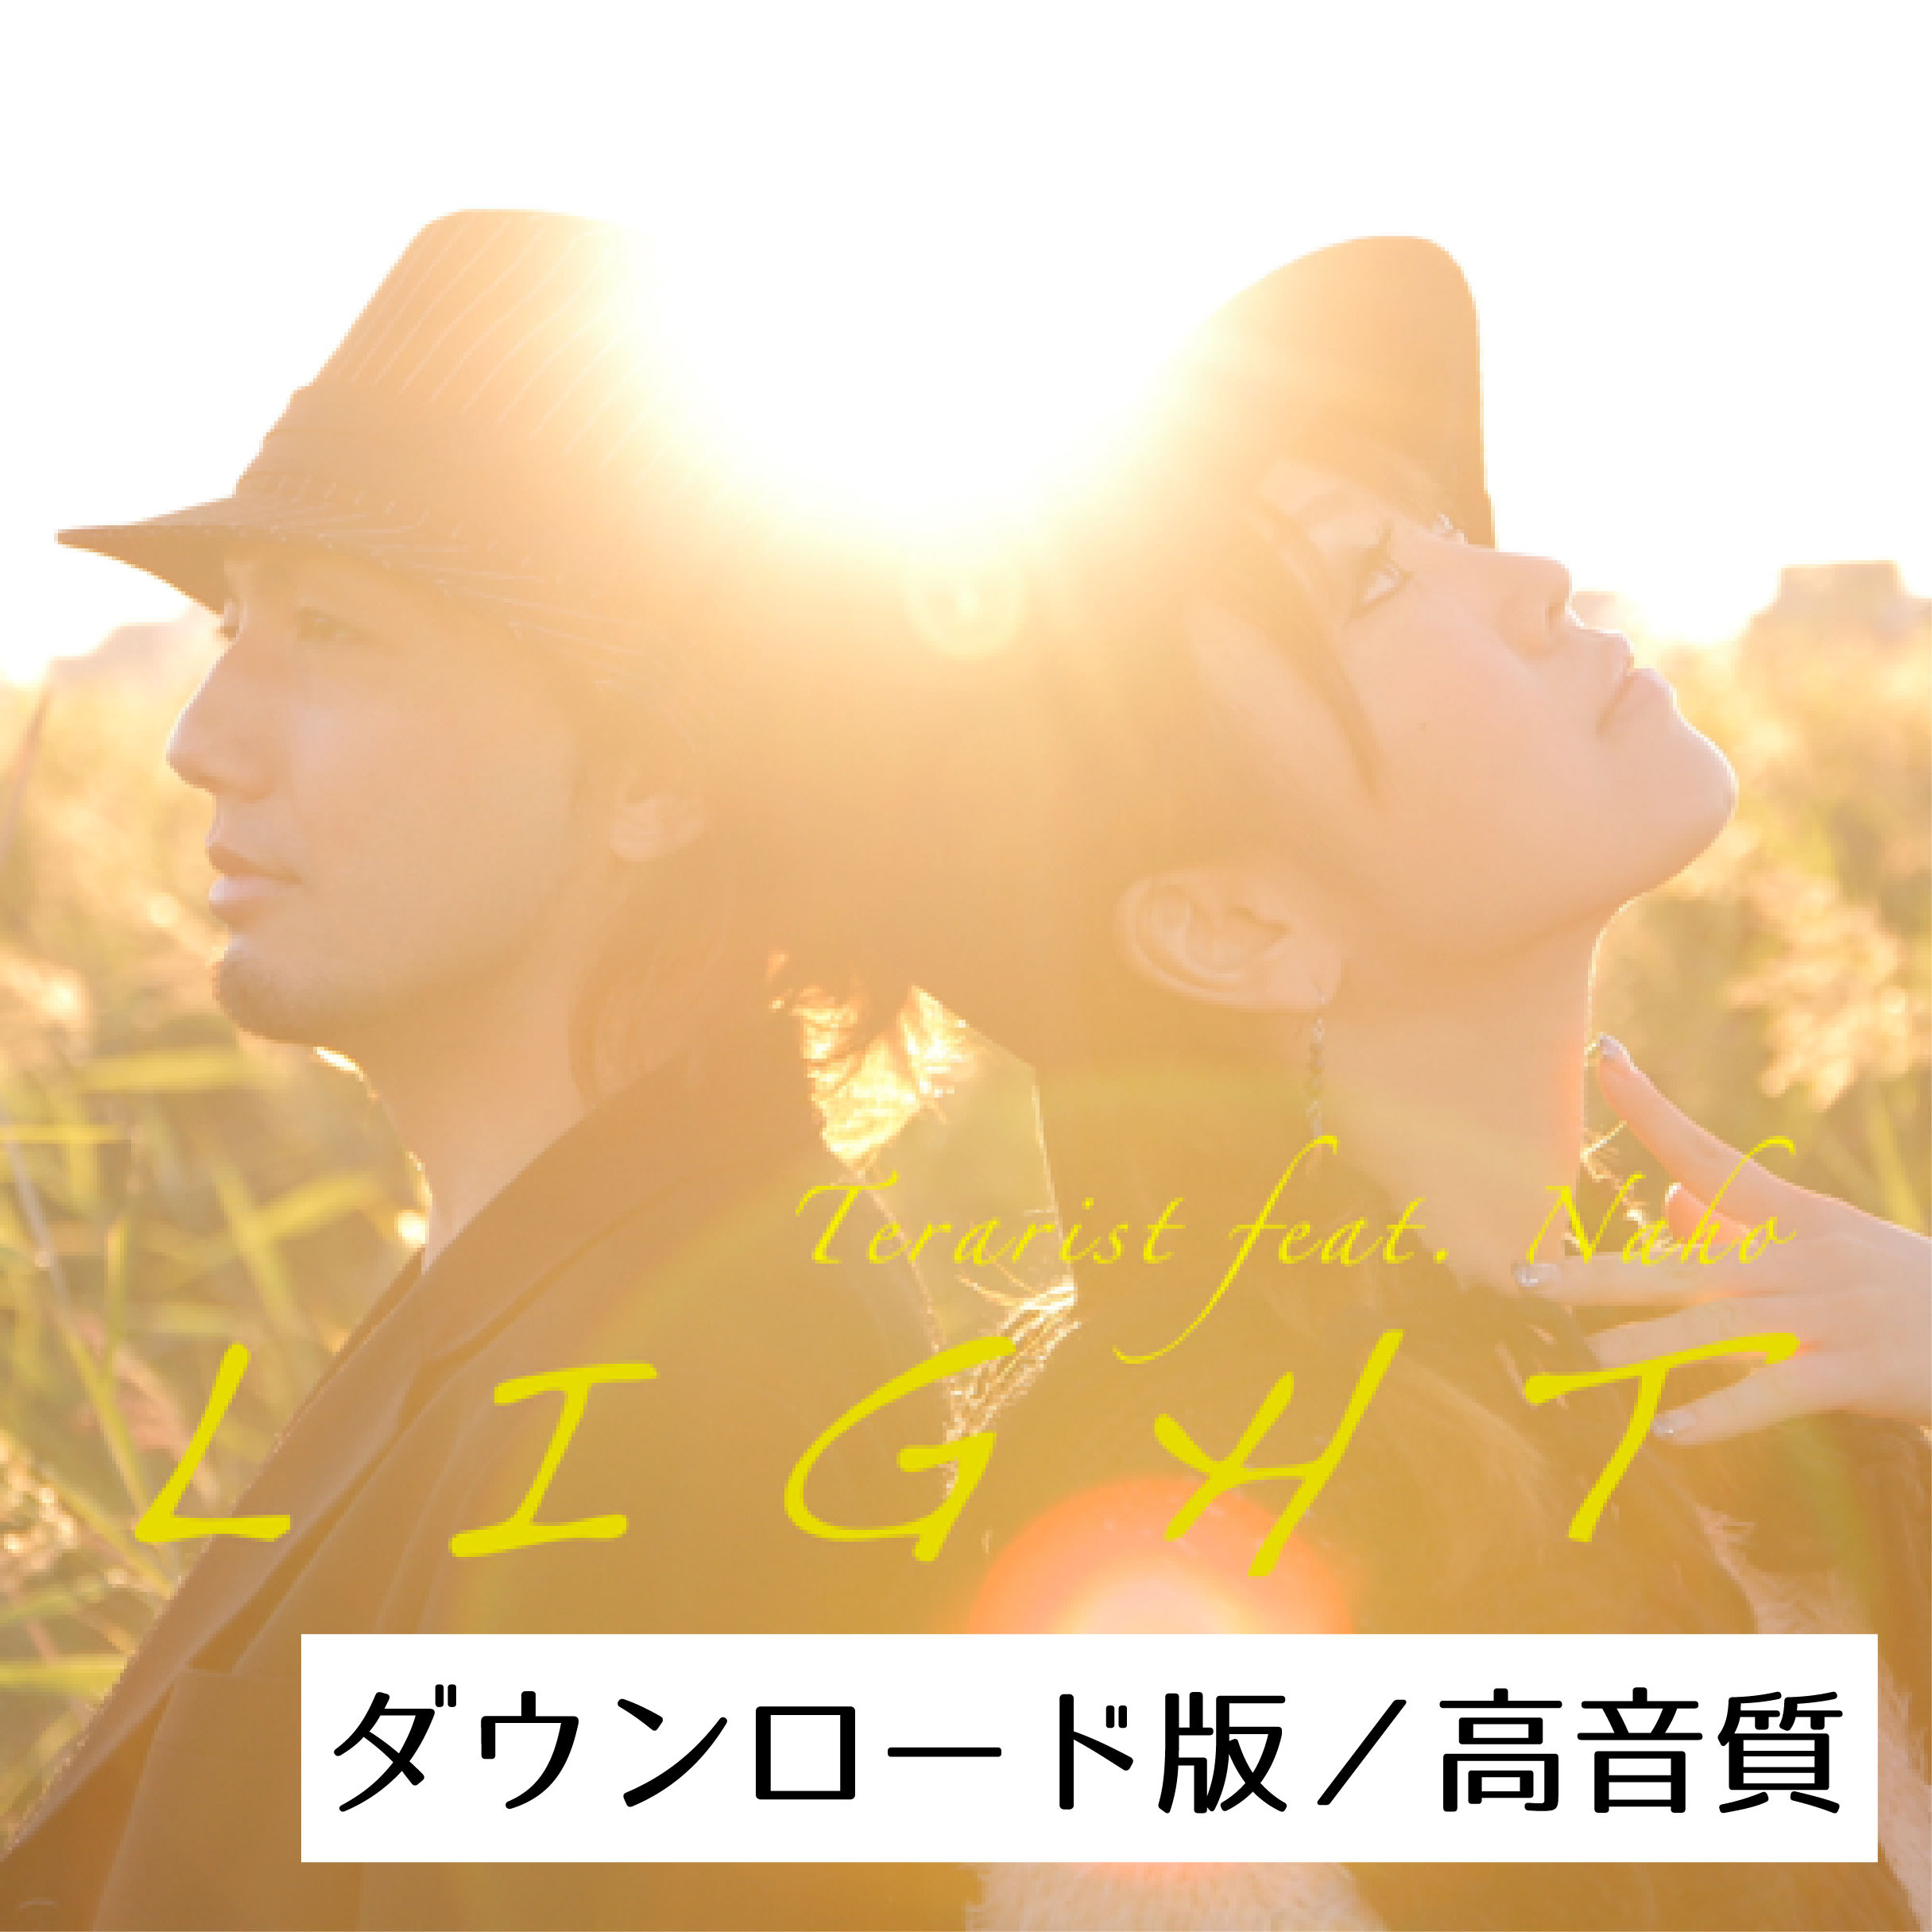 てらりすと 1st Single『L I G H T』feat.Naho(DL版・高音質) - 画像1